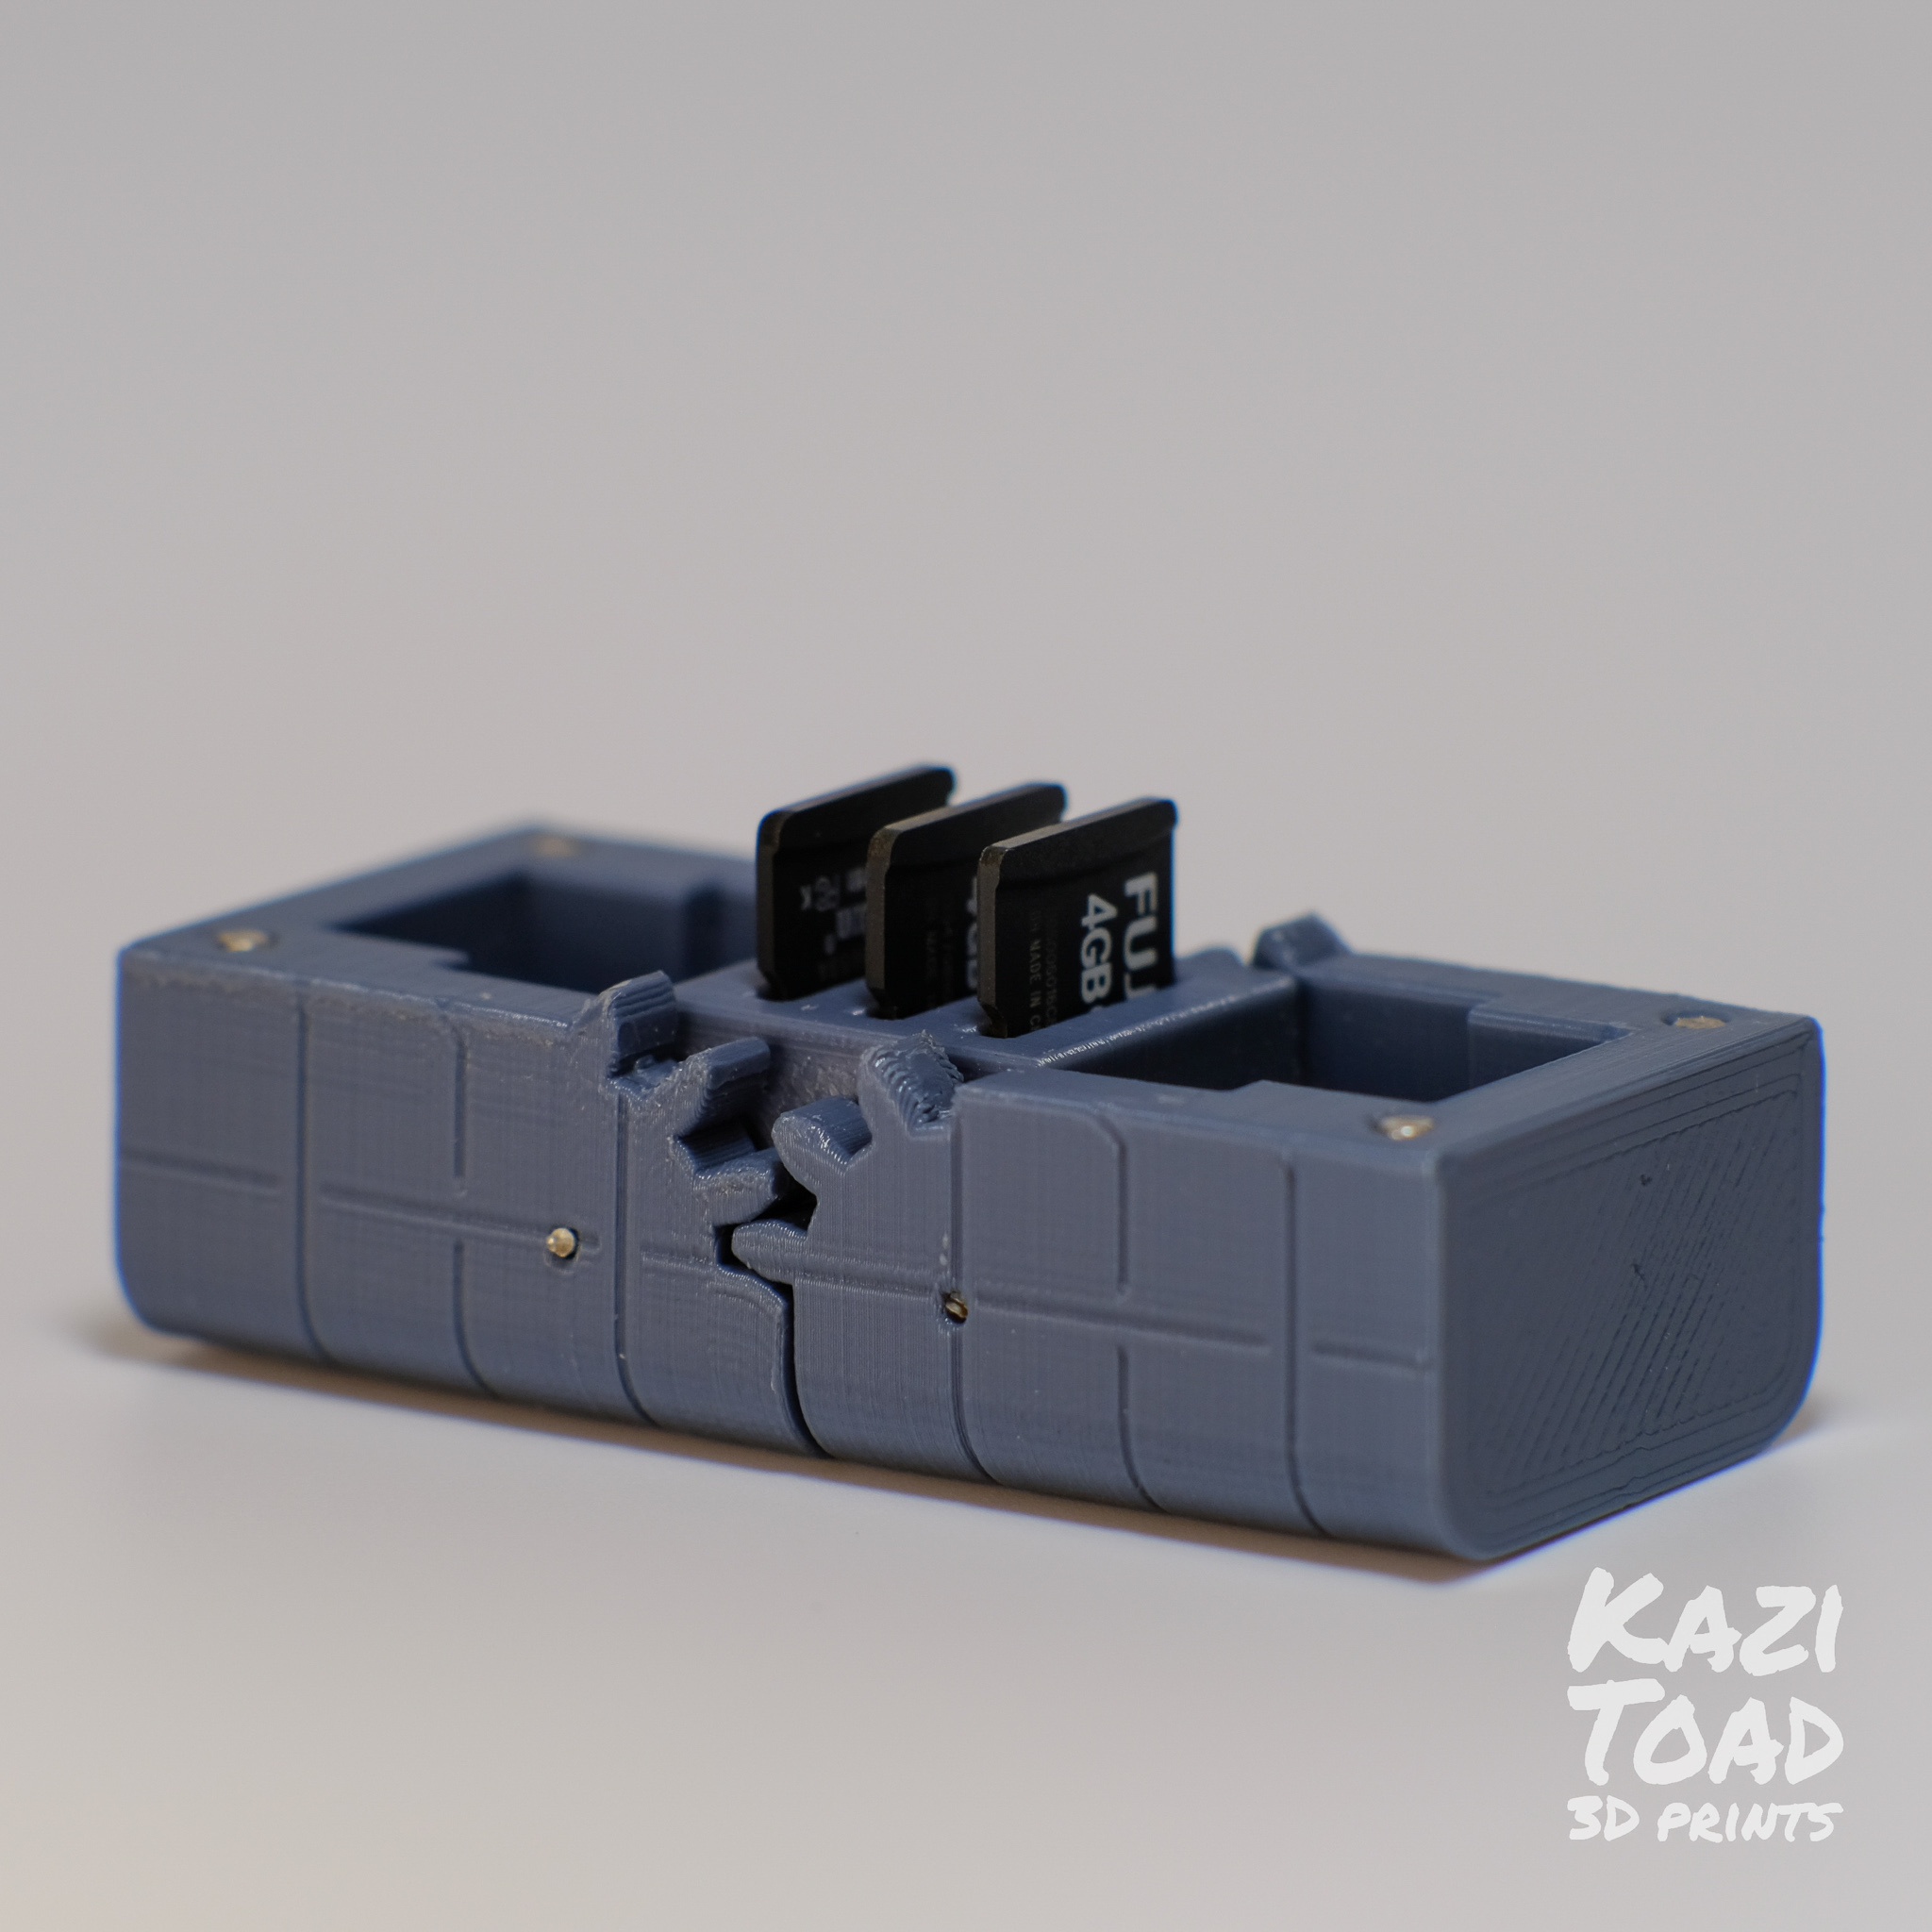 sd1.jpg Download STL file Micro geared cases: for micro SD cards and other tiny objects • Object to 3D print, KaziToad